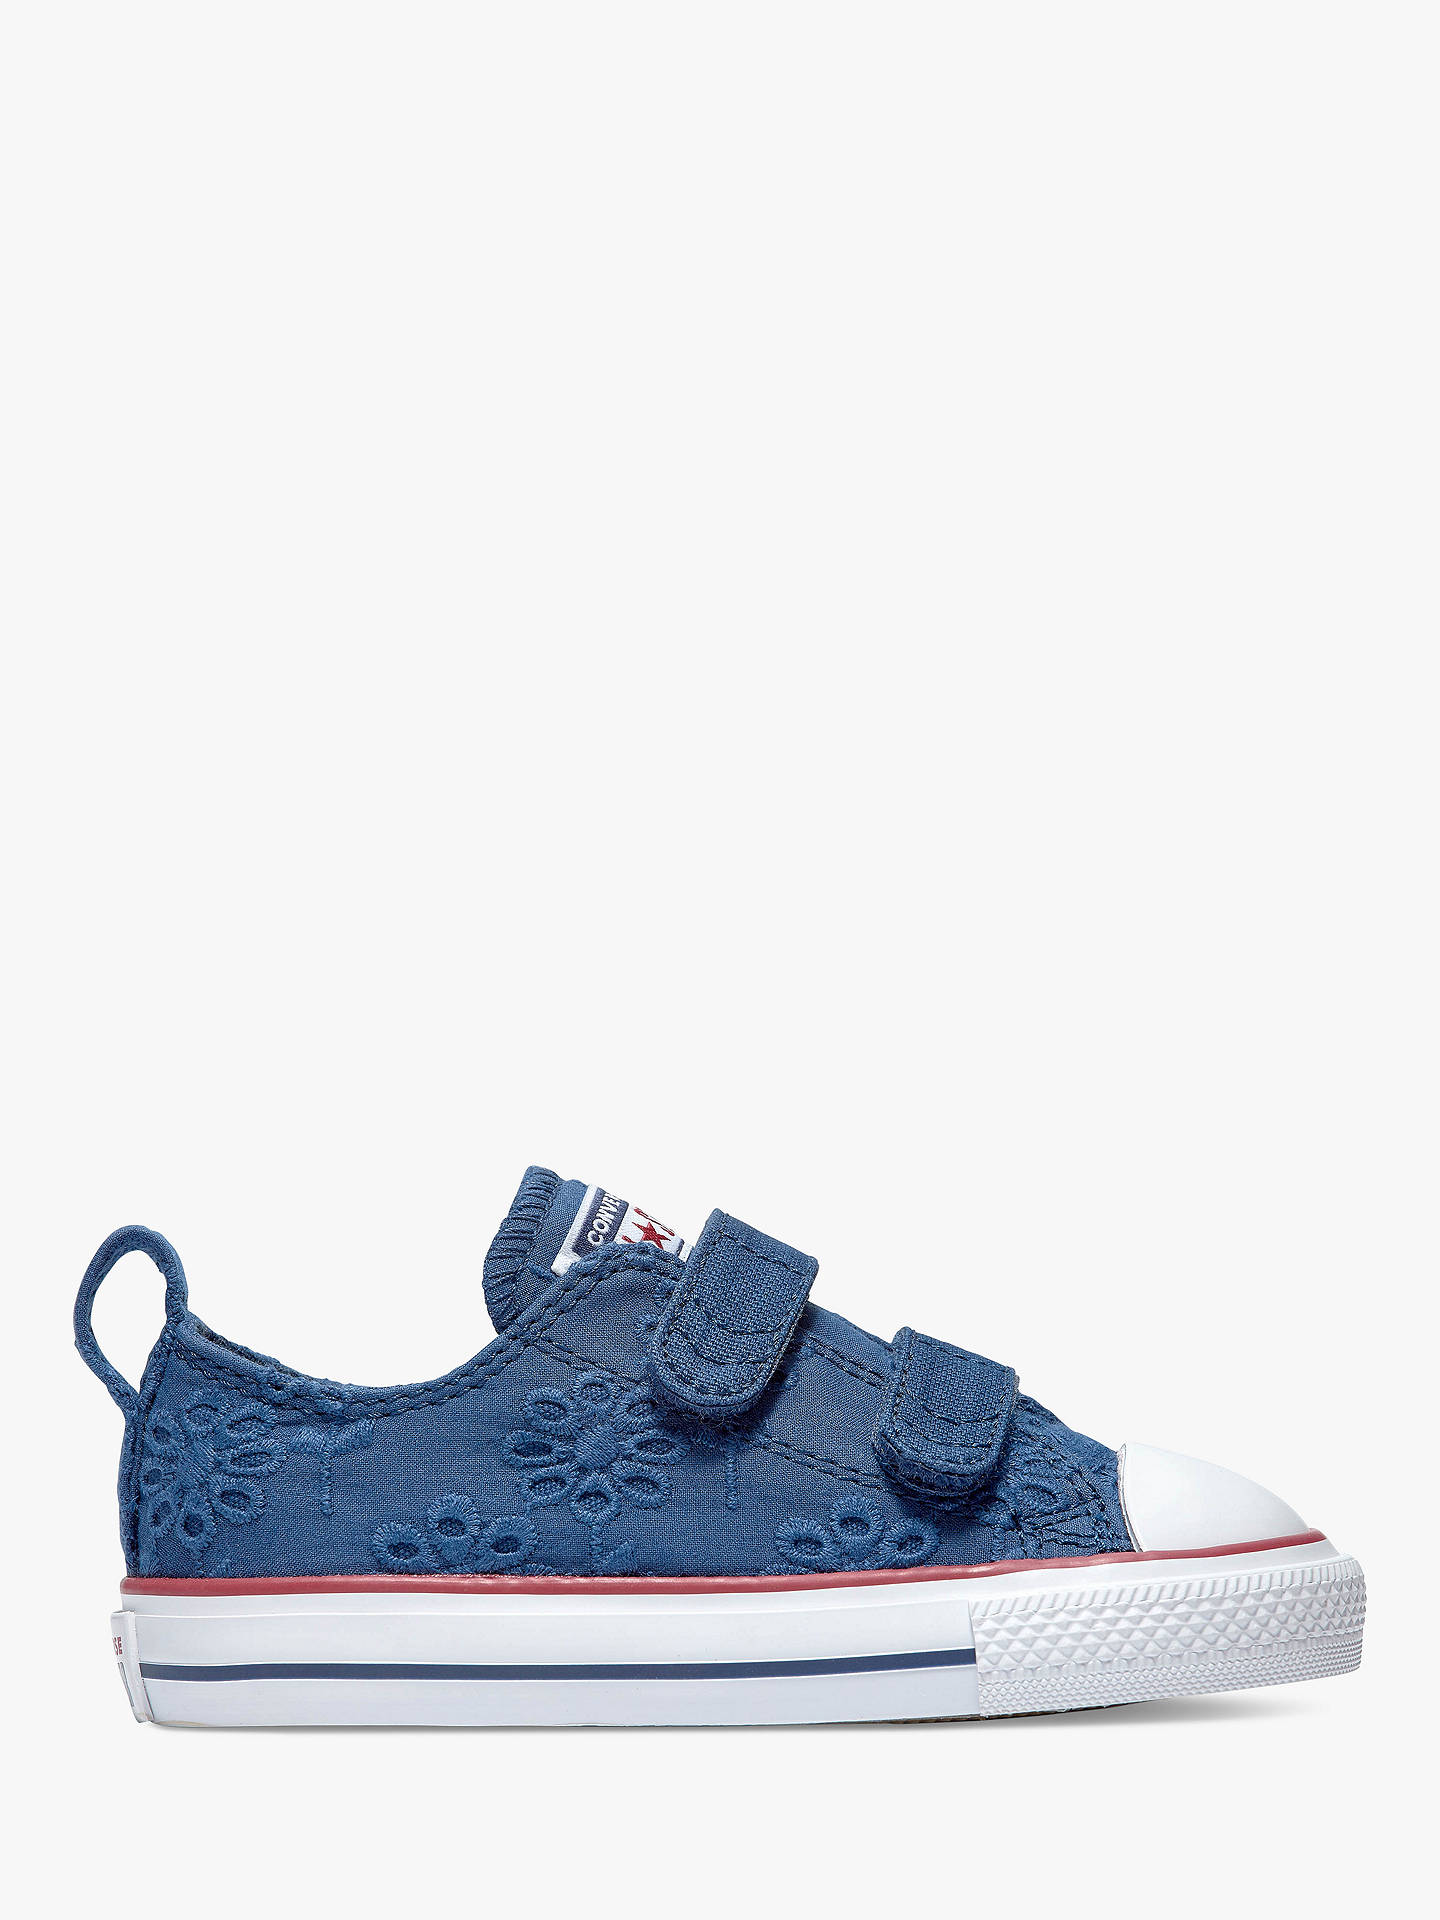 00f7598f5c86 Buy Converse Junior Chuck Taylor All Star Broderie Anglaise 2V Riptape  Trainers